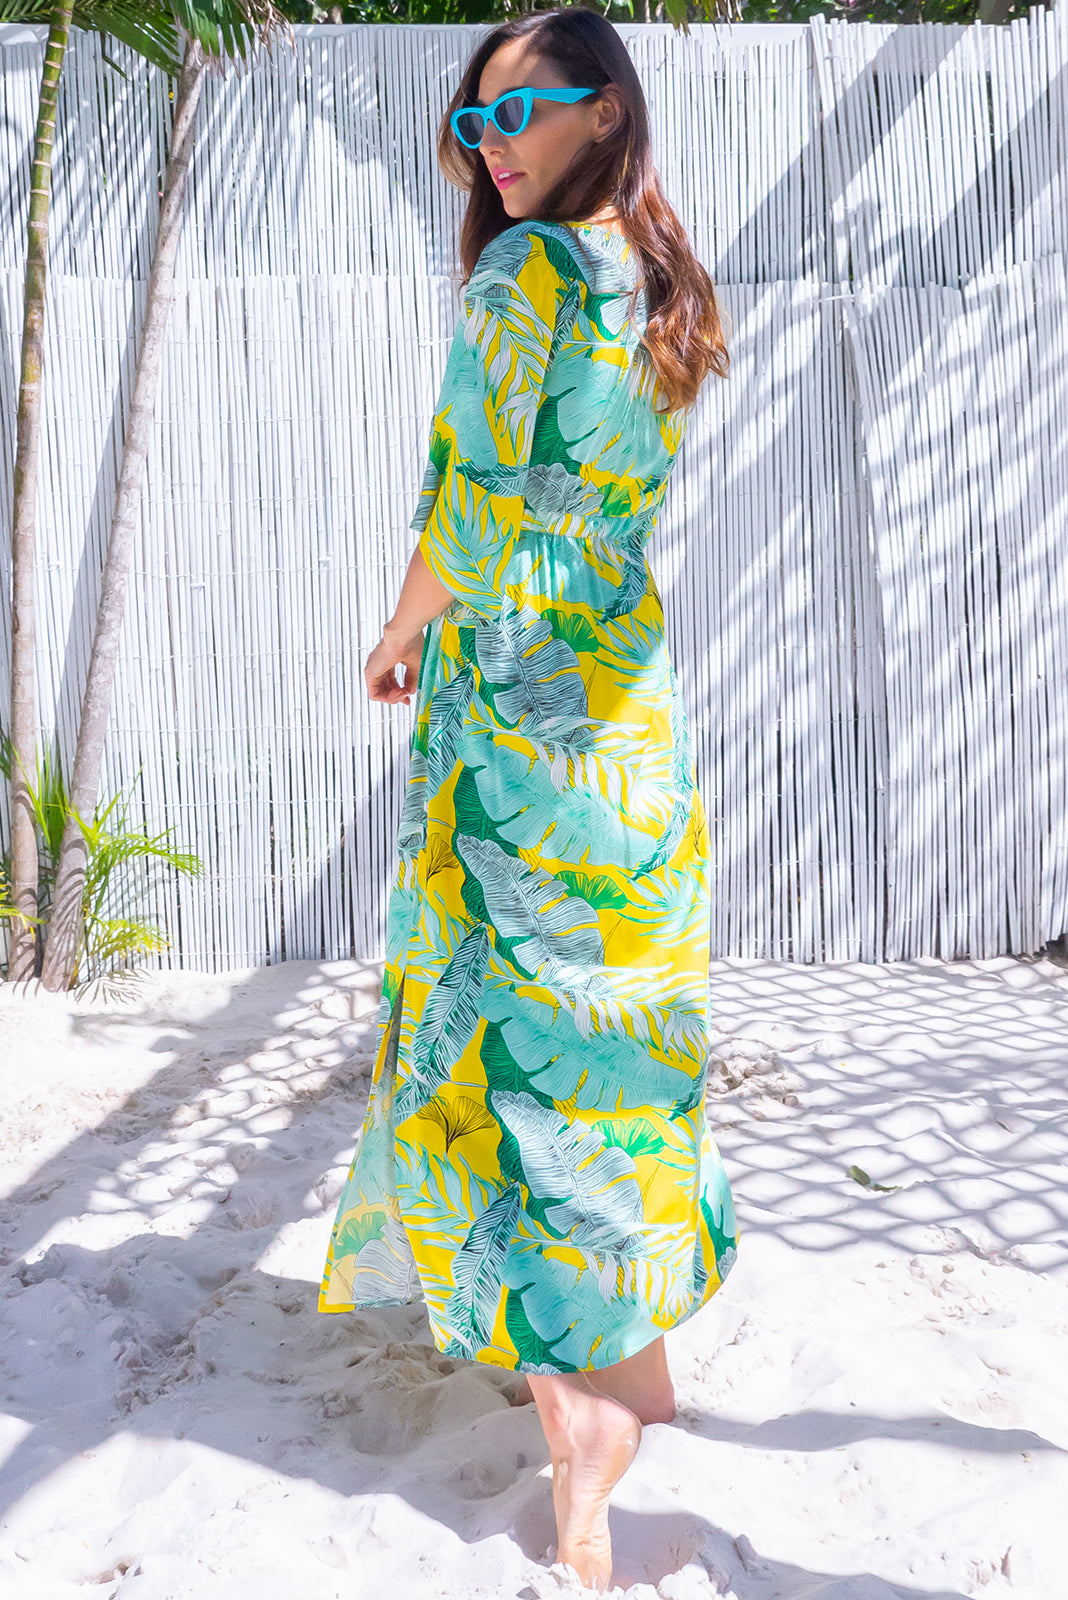 The Annabella Palm Gold Caftan Maxi Dress is a deep V-neckline beach dress featuring side pockets, braided multicoloured drawstring with tassels and bead and 100% rayon in bright yellow base with green palm print.